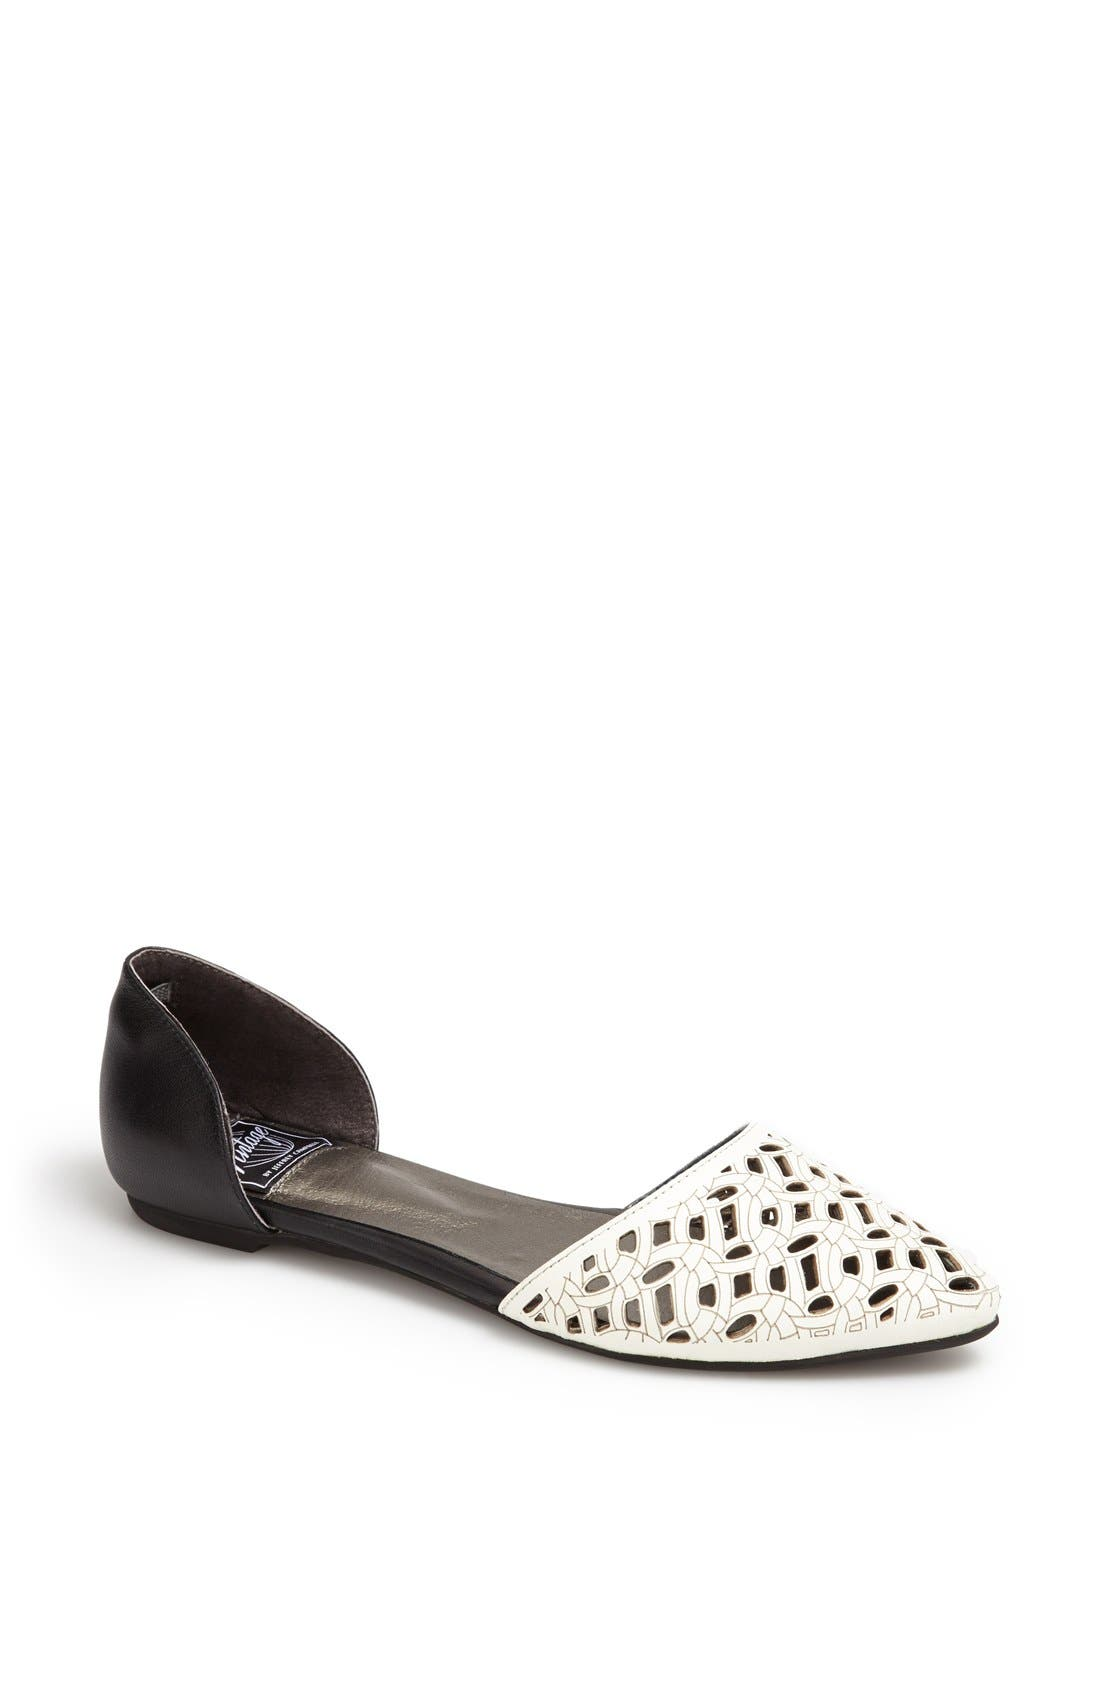 Main Image - Jeffrey Campbell 'In Love' Laser Cut d'Orsay Flat